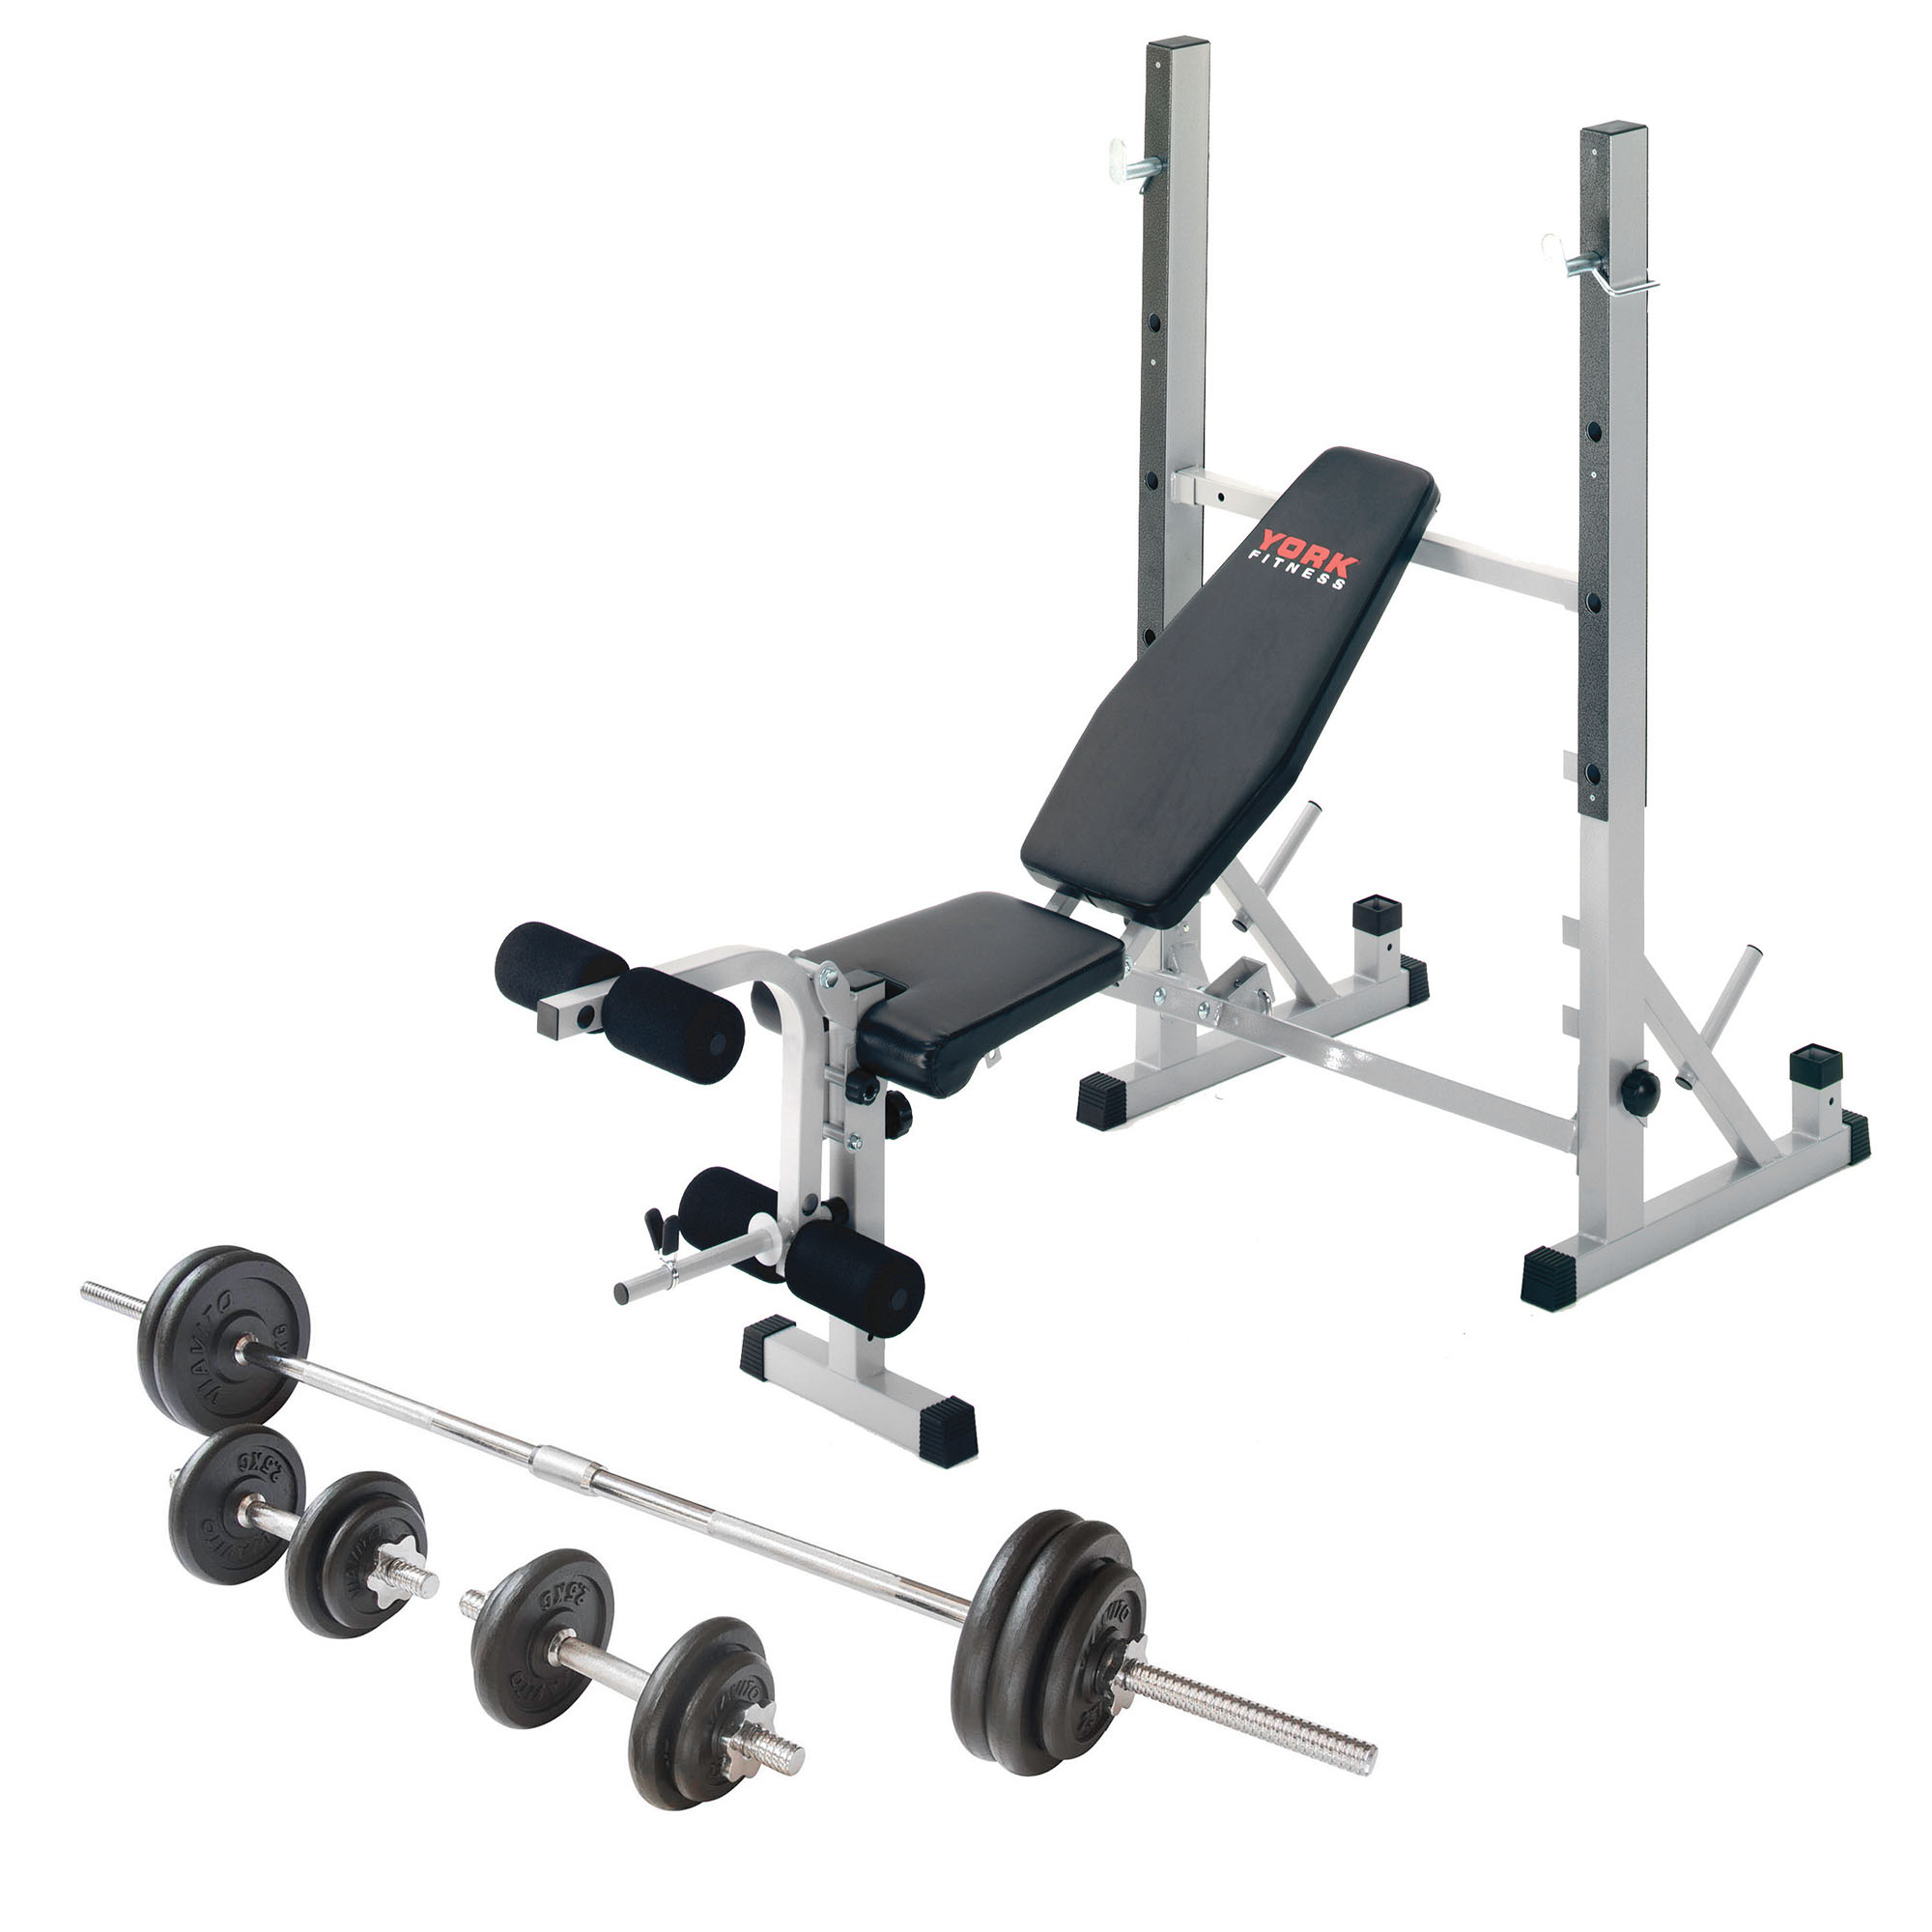 V fit folding weight bench and viavito 50kg cast iron weight set Weight set and bench